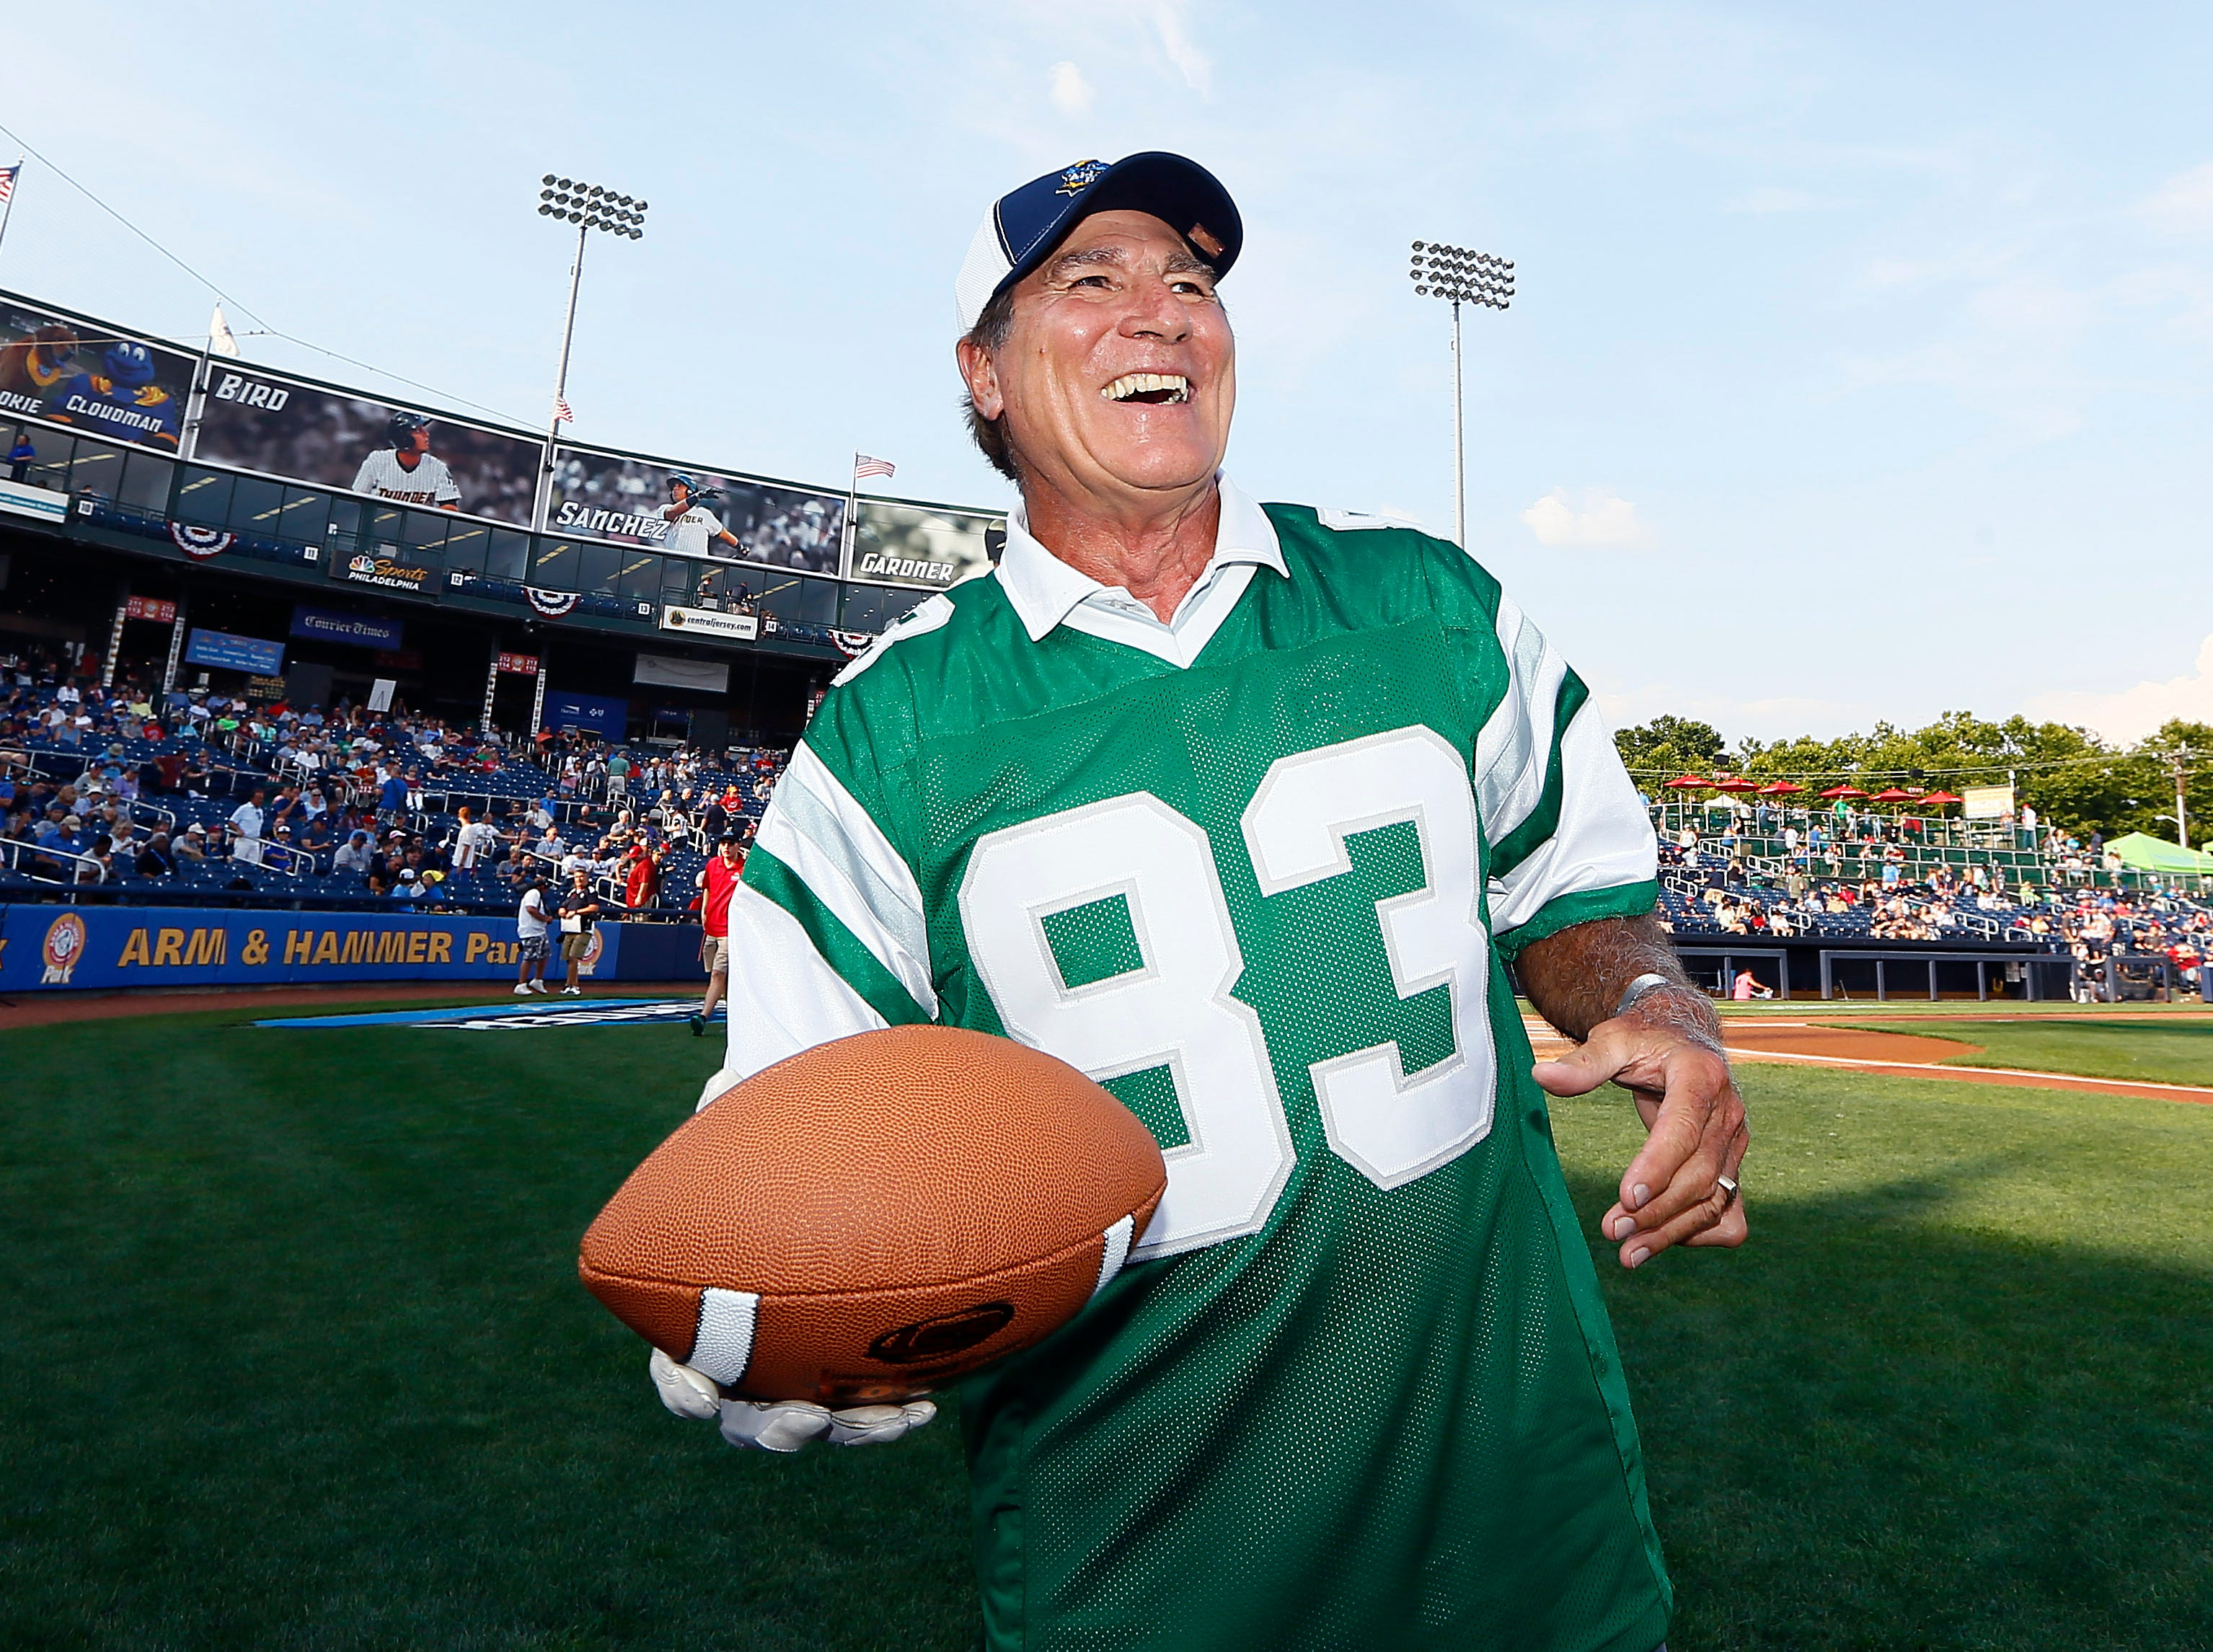 Former  Philadelphia Eagles Vince Papale prepares to throw out a ceremonial first pitch as the Trenton Thunder hosted the 2018 Eastern League All-Star Classic at ARM & HAMMER Park in Trenton. July 11, 2018, Trenton, NJ.